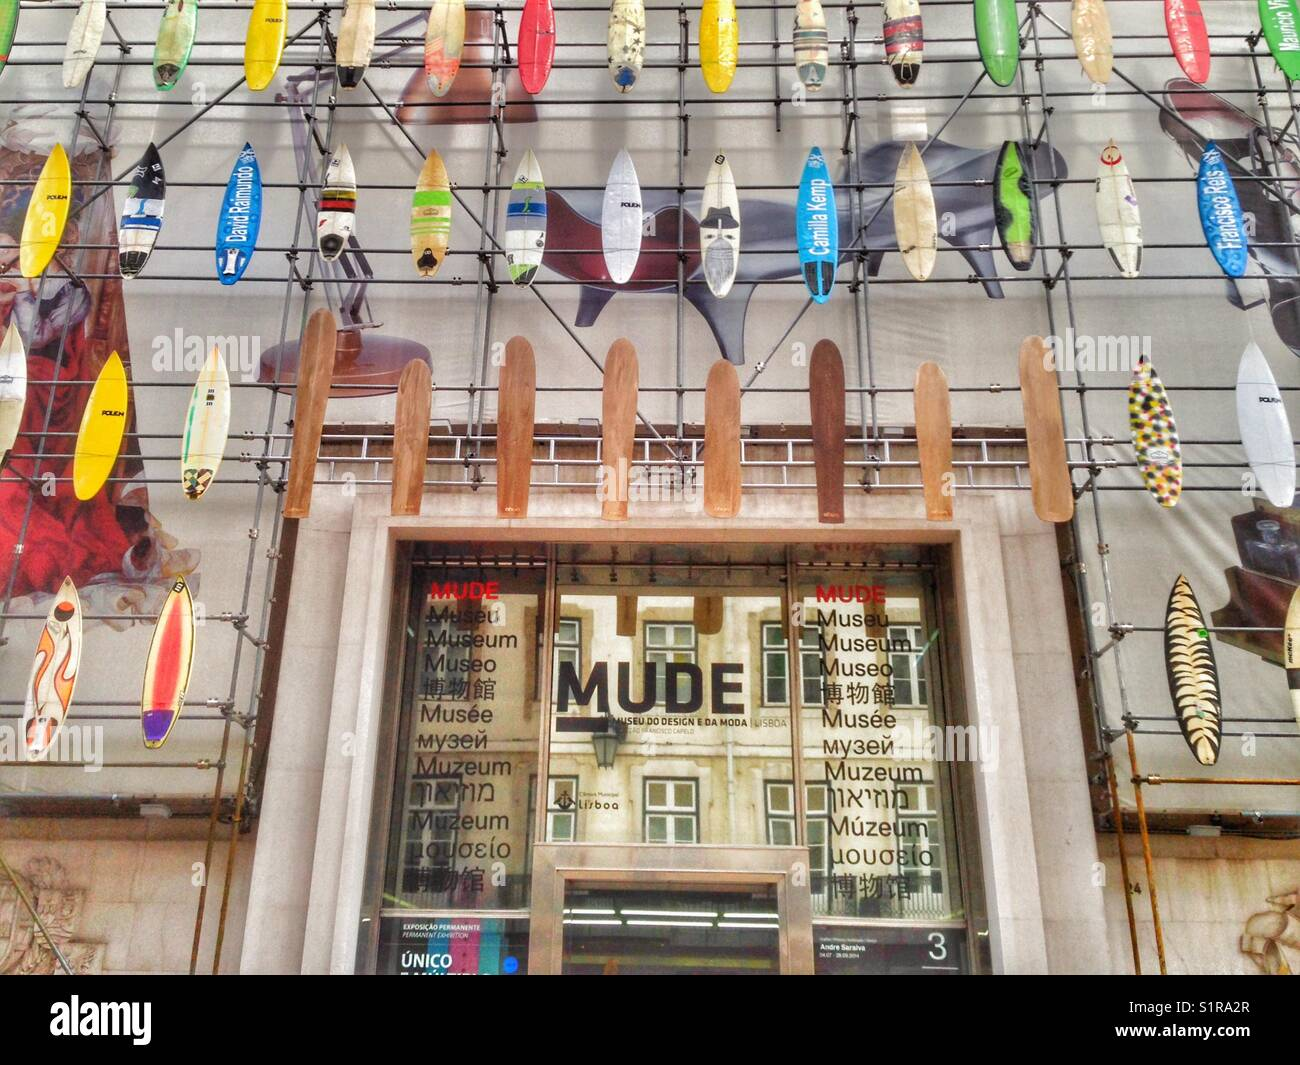 Mude Museum Of Design And Fashion In Lisbon Portugal With Surfboard Stock Photo Alamy